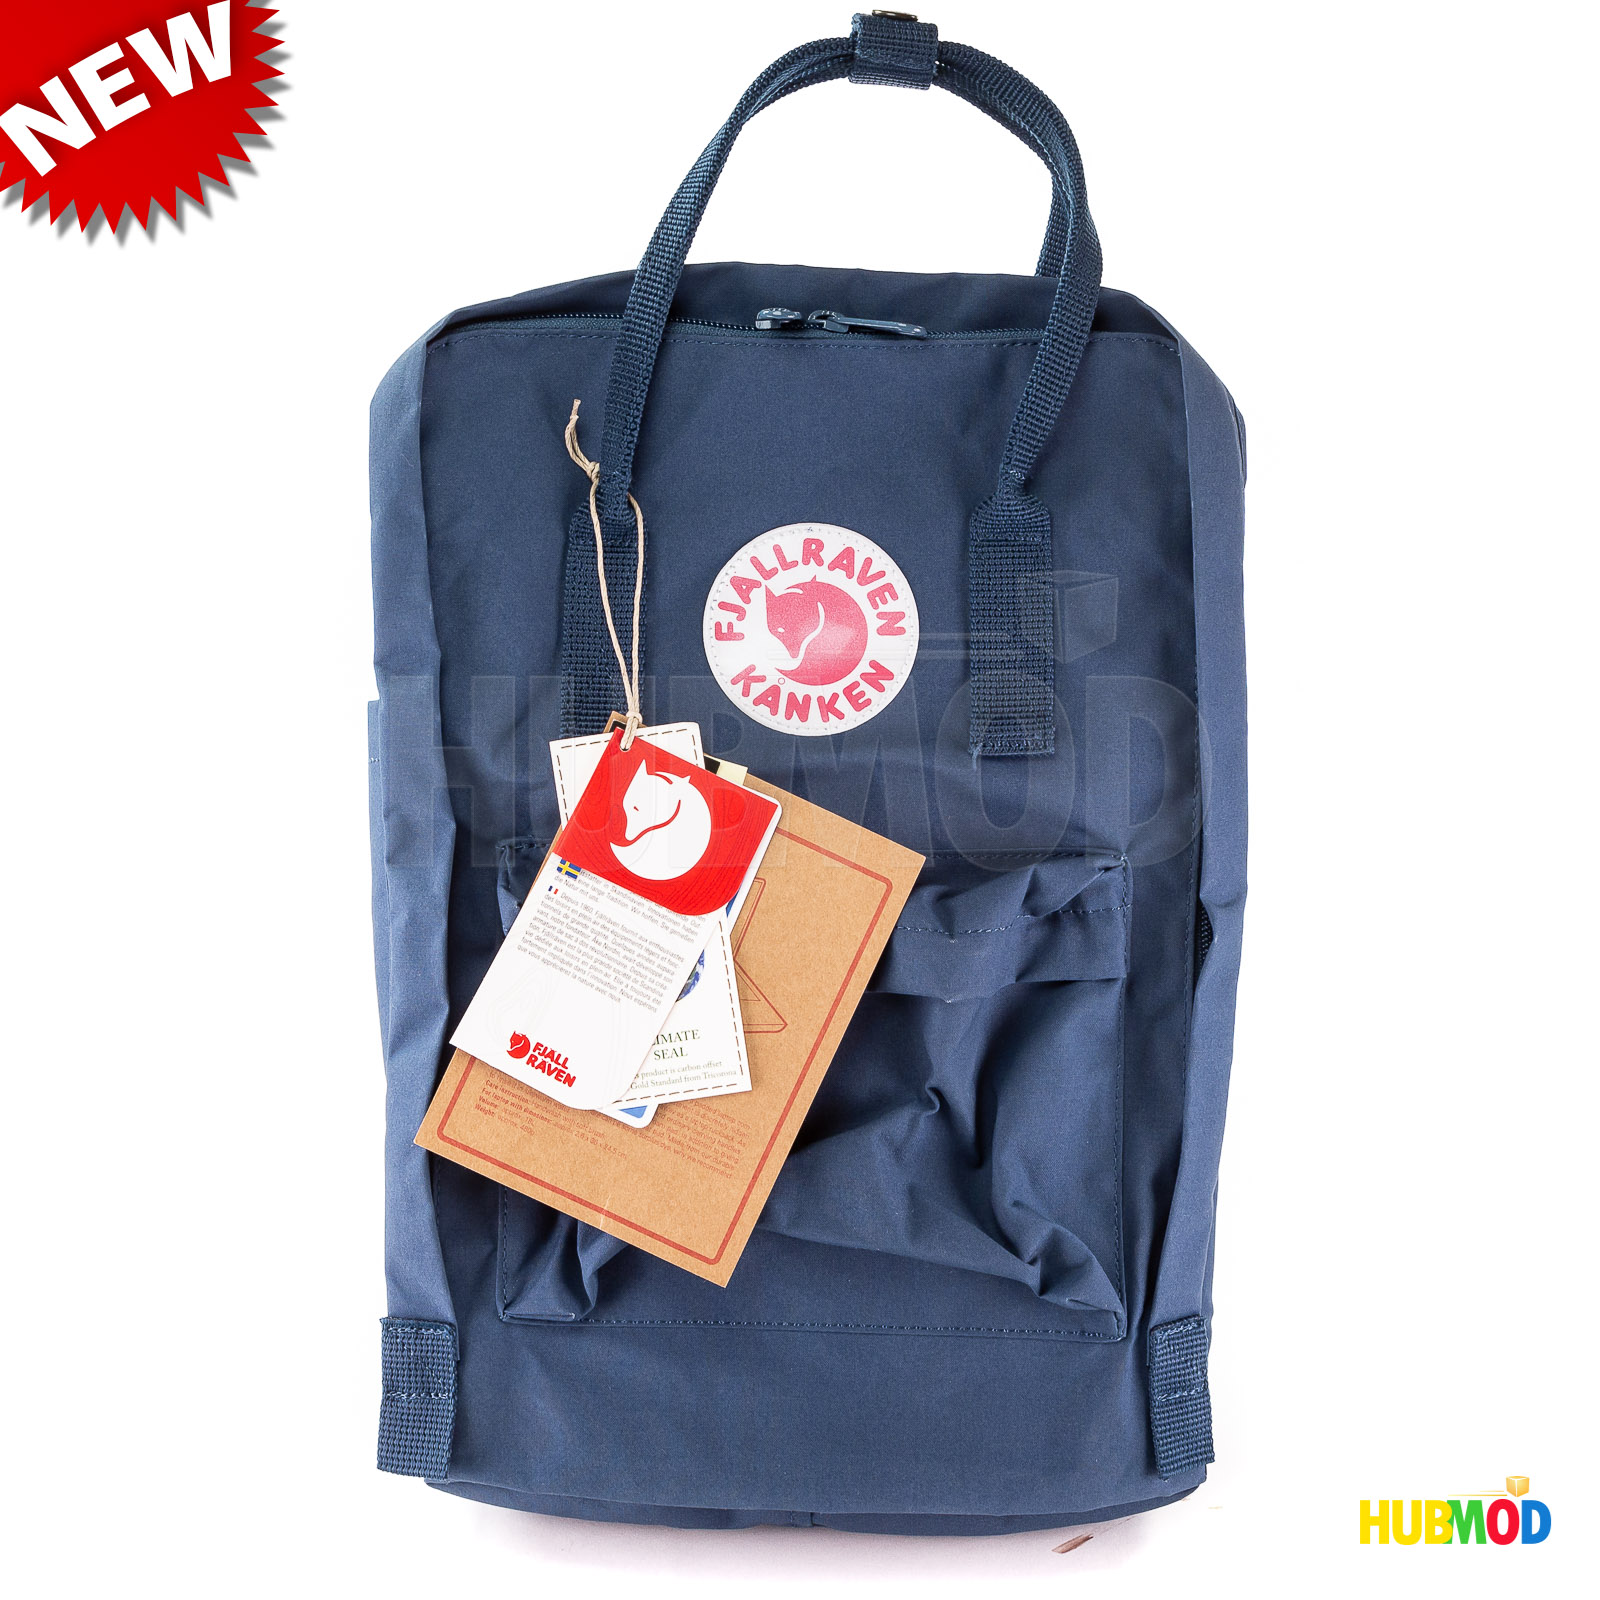 d153c3e8a57 Fjallraven Kanken 15 Laptop Backpack Bag 27172 540 Royal Blue